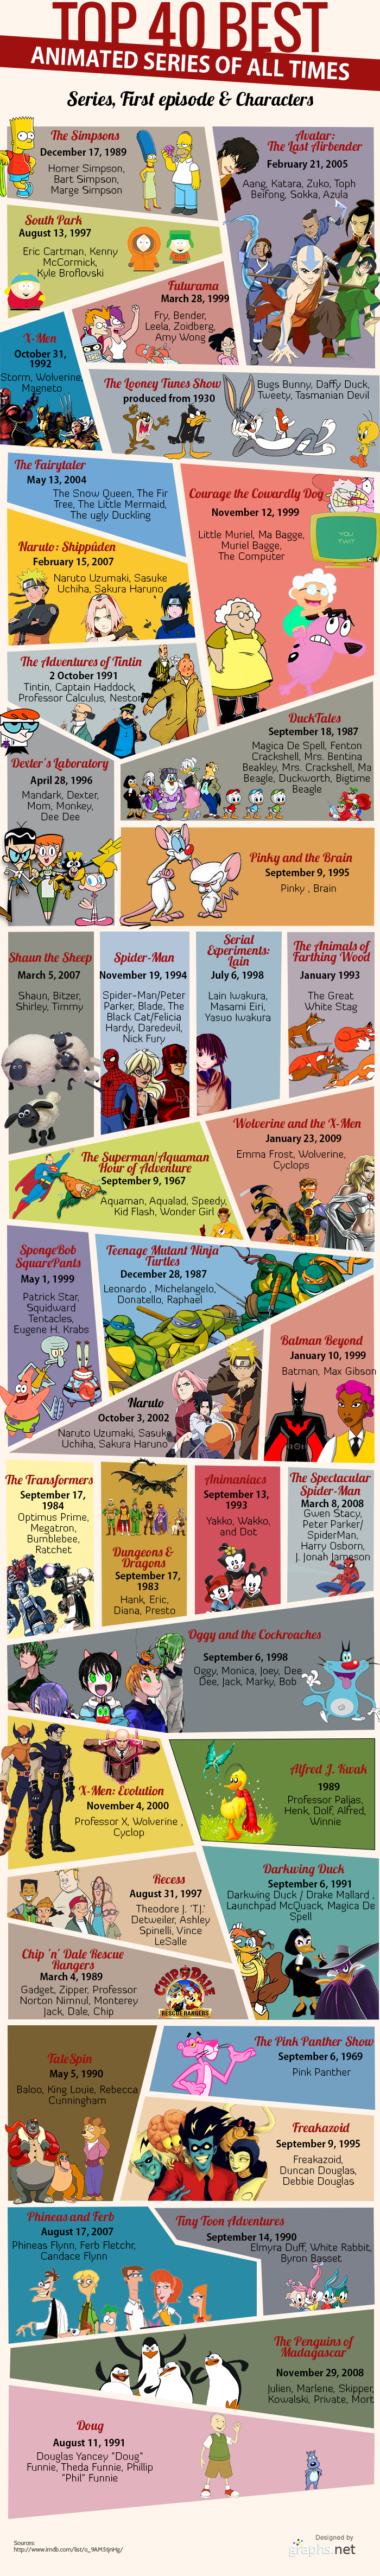 Top 40 BEST ANIMATED SERIES OF ALL TIMES